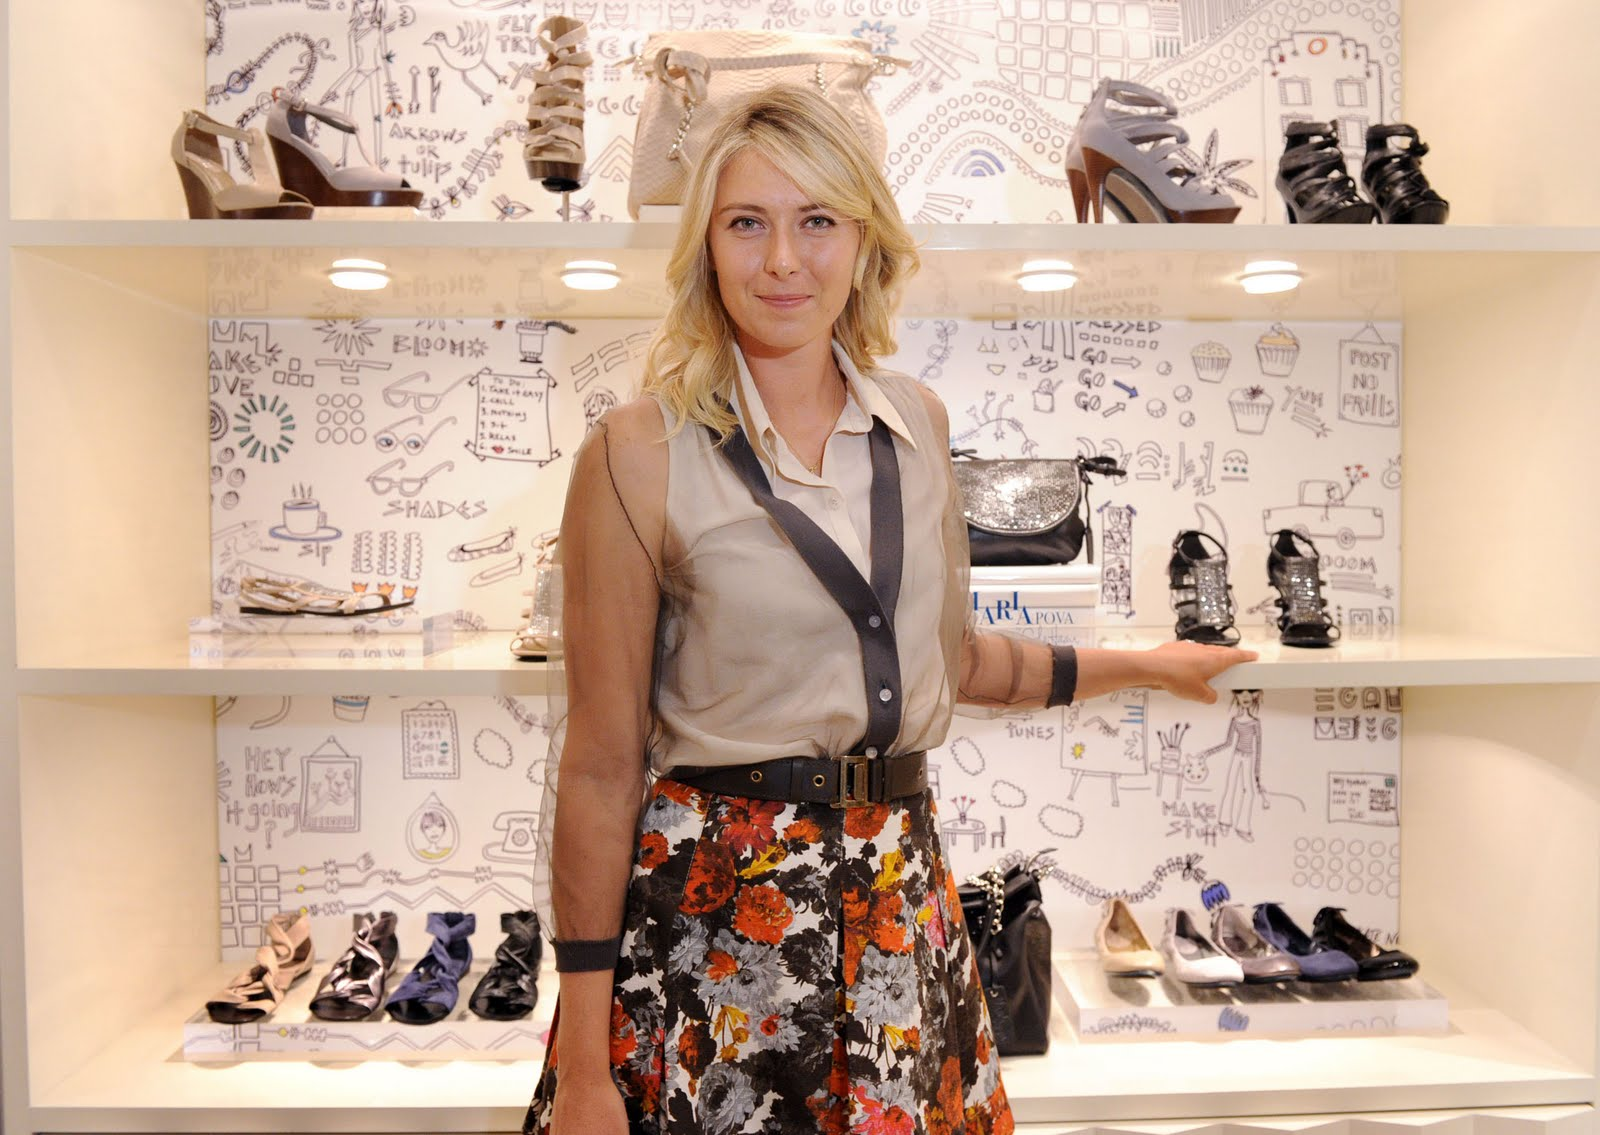 http://3.bp.blogspot.com/-vx0uOjVdJpo/TZTlXO5UGWI/AAAAAAAAp5M/yQT9Nnvhs9g/s1600/49709_celebrity_paradise.com_TheElder_MariaSharapova2011_03_22_launchofher2011SpringCollectioninCoralGables3_122_451lo.jpg